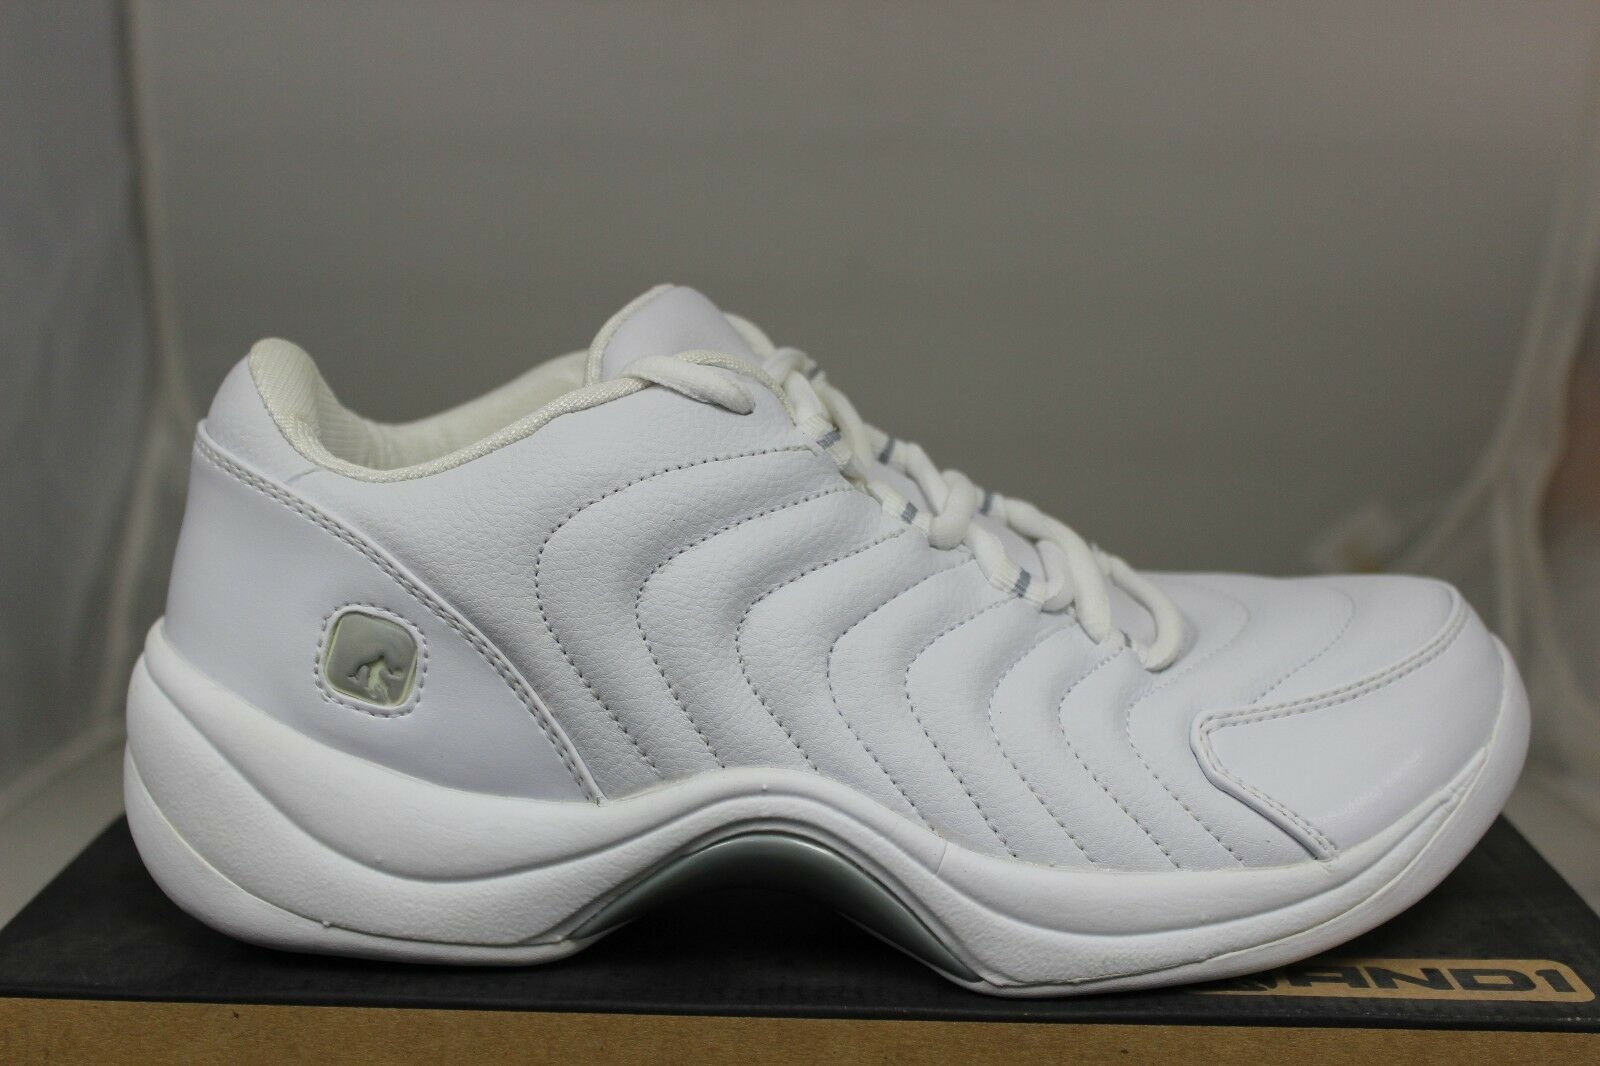 And1 Basketball Drop Step Low D802MWW White Silver Brand New